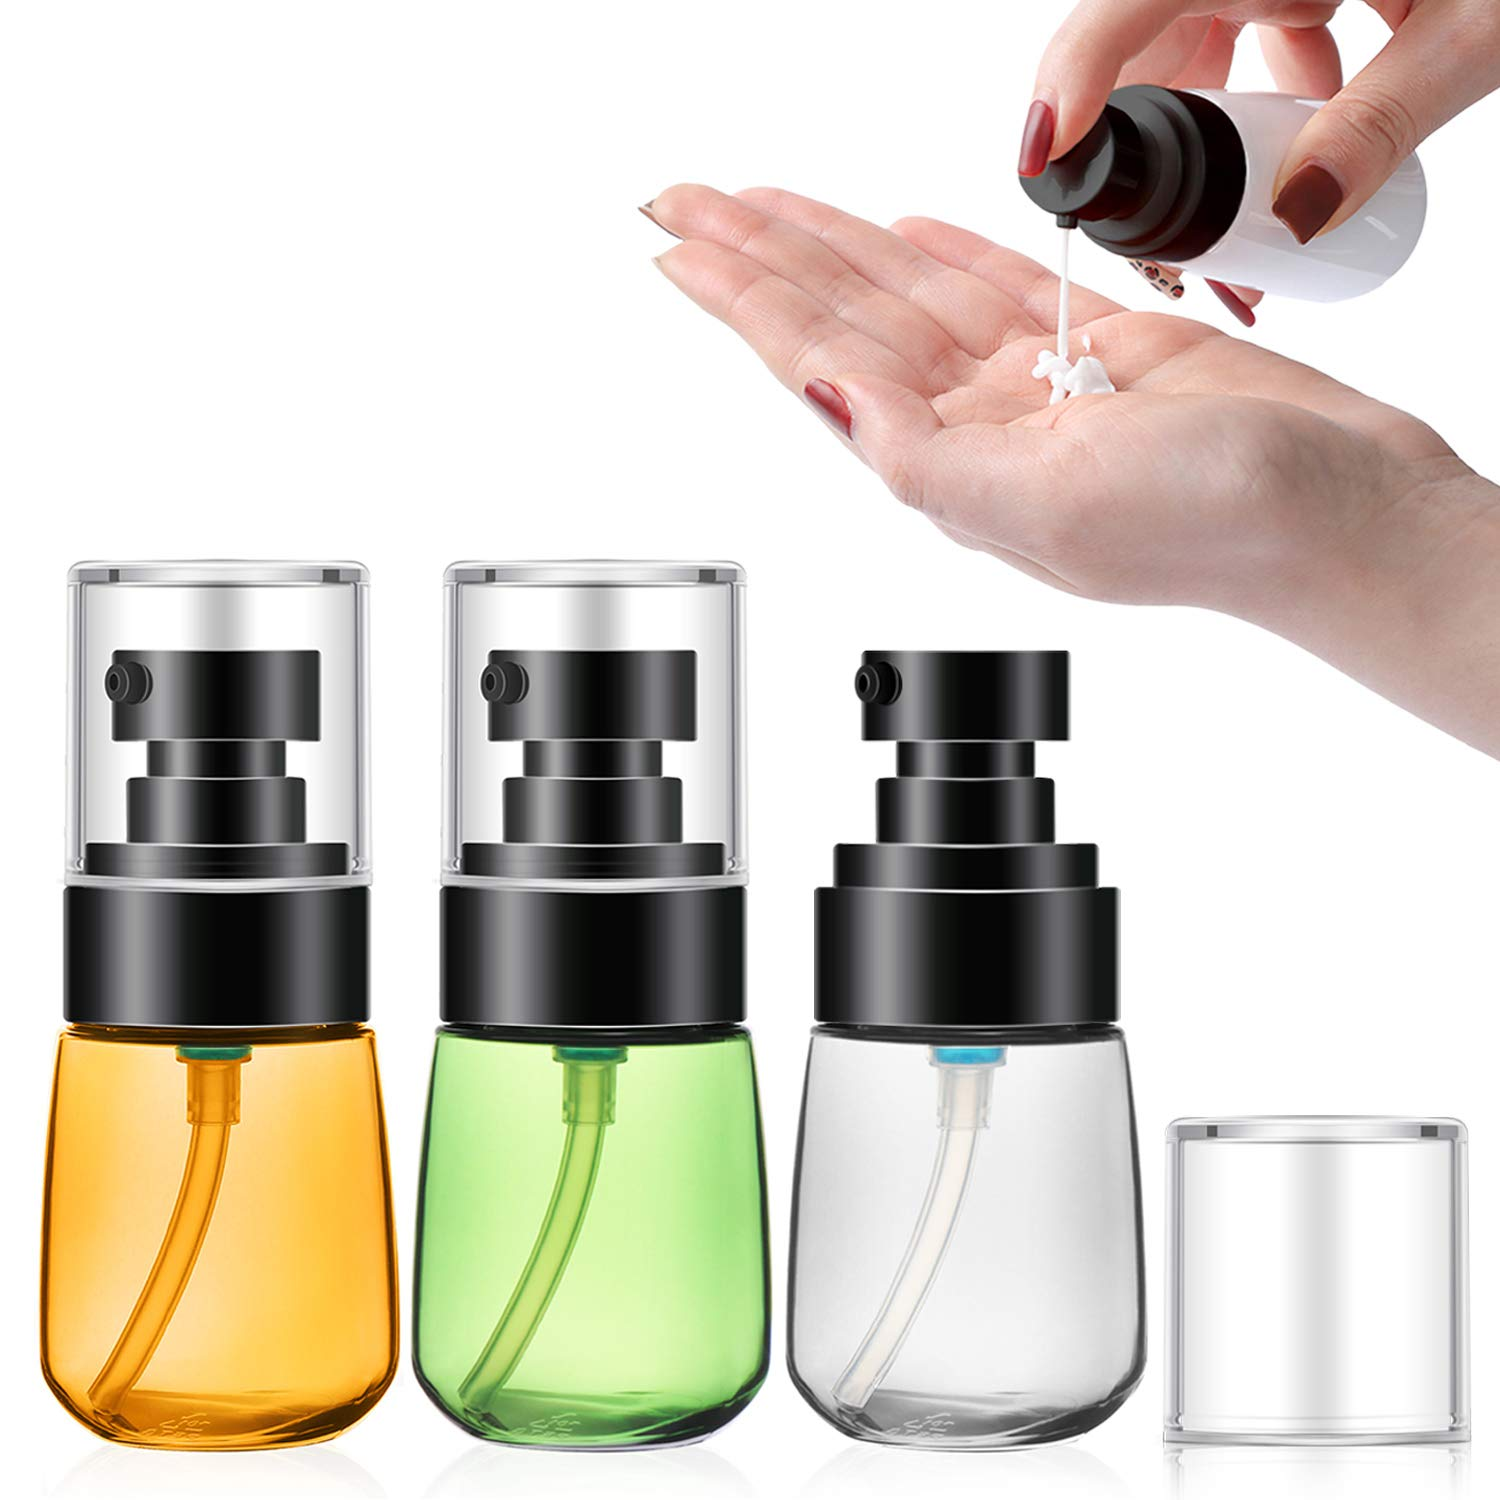 Segbeauty Travel Lotion Pump Bottle, 3pcs Dispenser Bottles Set for Essence Shampoo Conditioner 30ml 1oz Empty Refillable Pressed Pump Bottle Cosmetic Containers